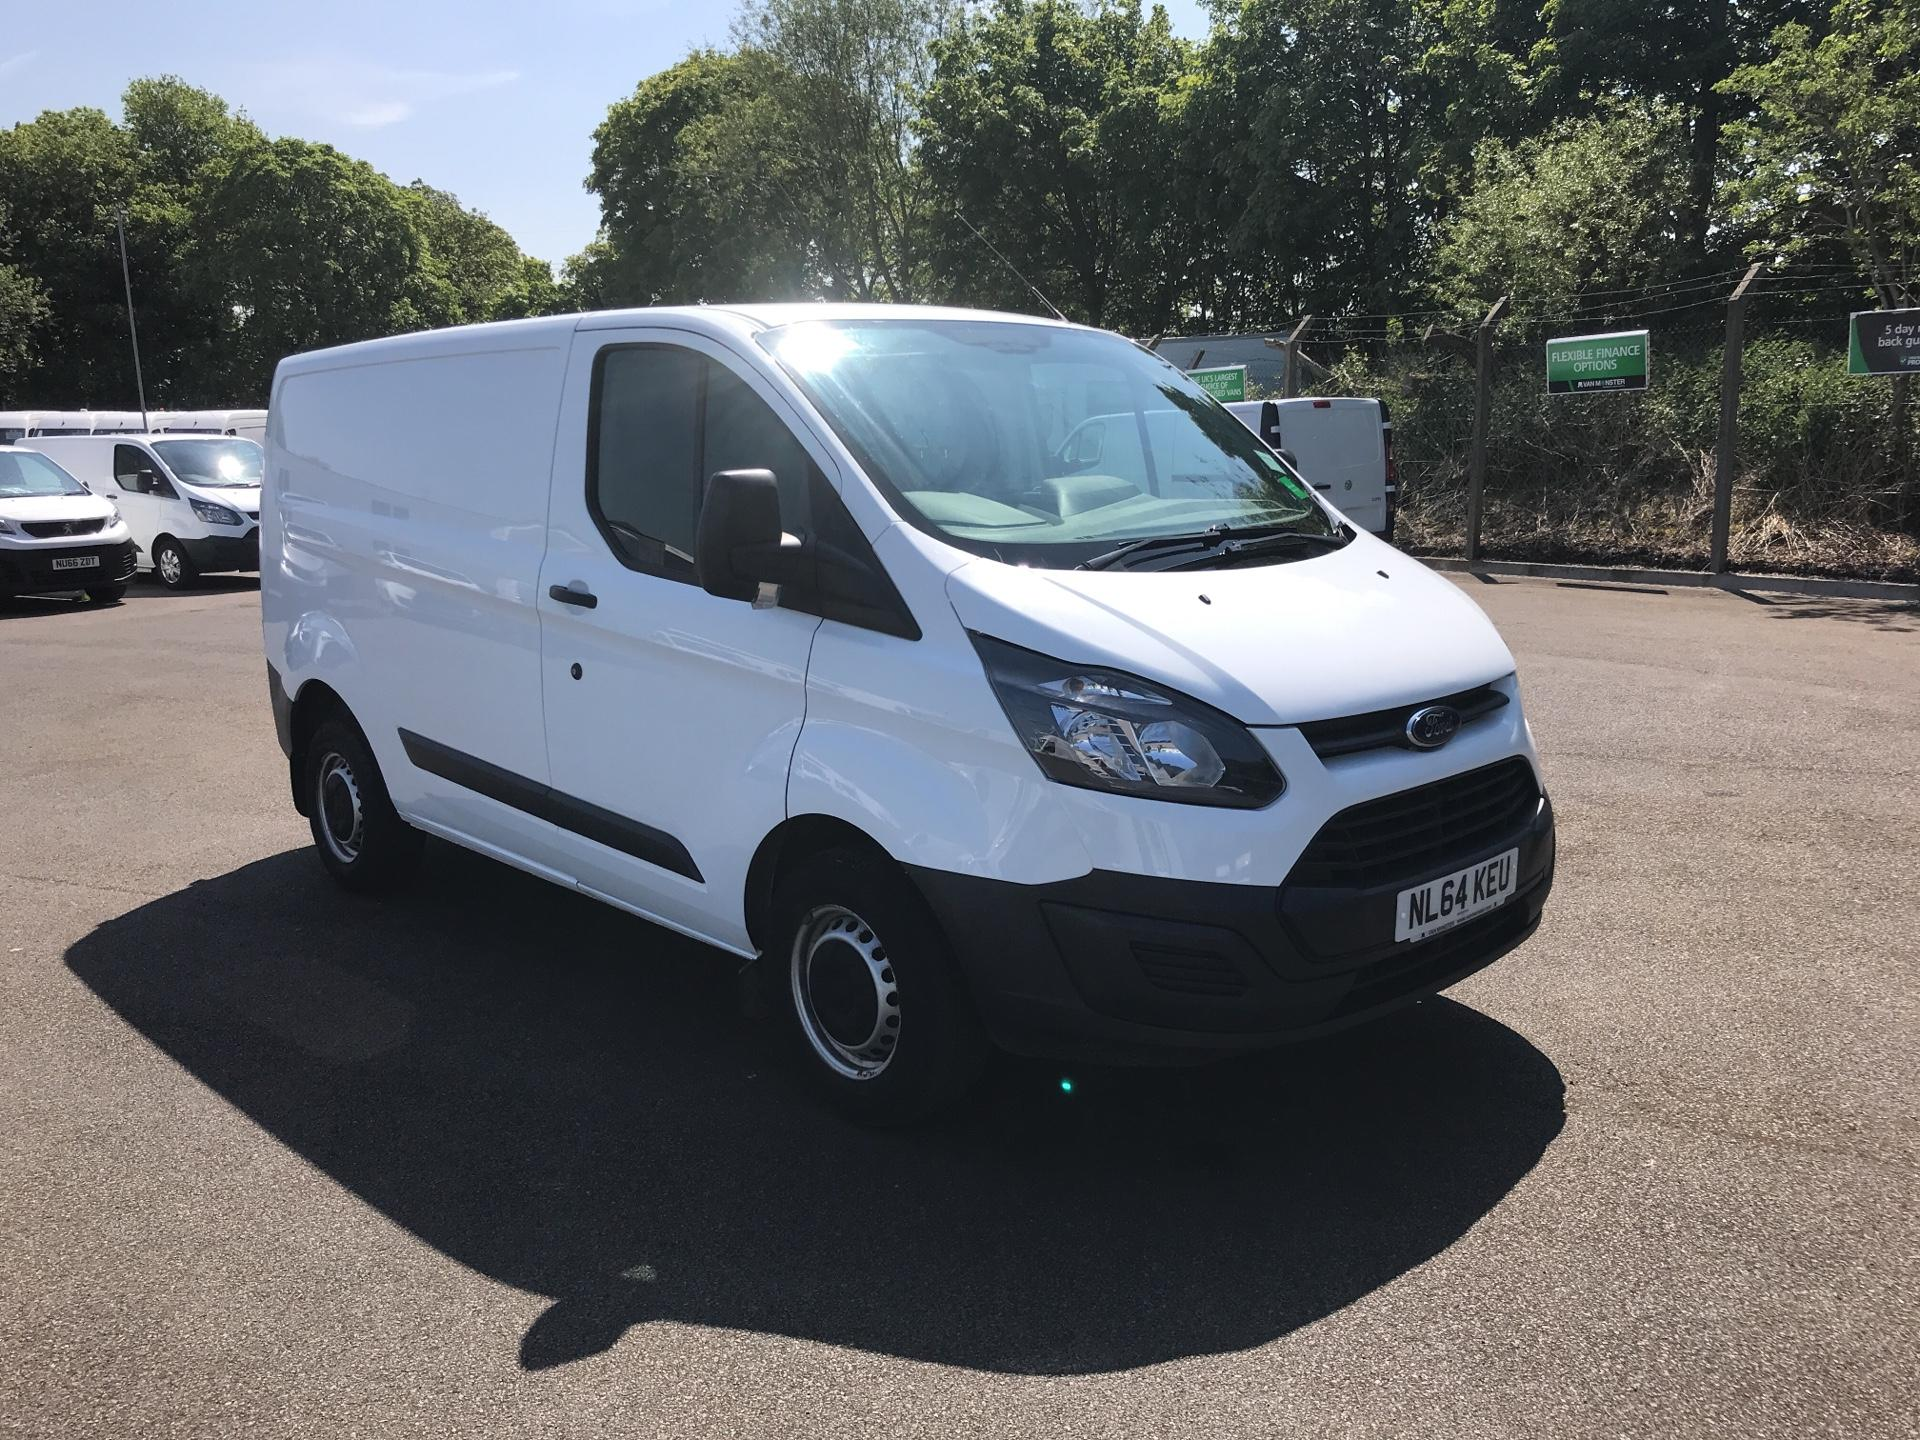 2014 Ford Transit Custom 290 L1 DIESEL FWD 2.2  TDCI 100PS LOW ROOF VAN EURO 5 (NL64KEU)